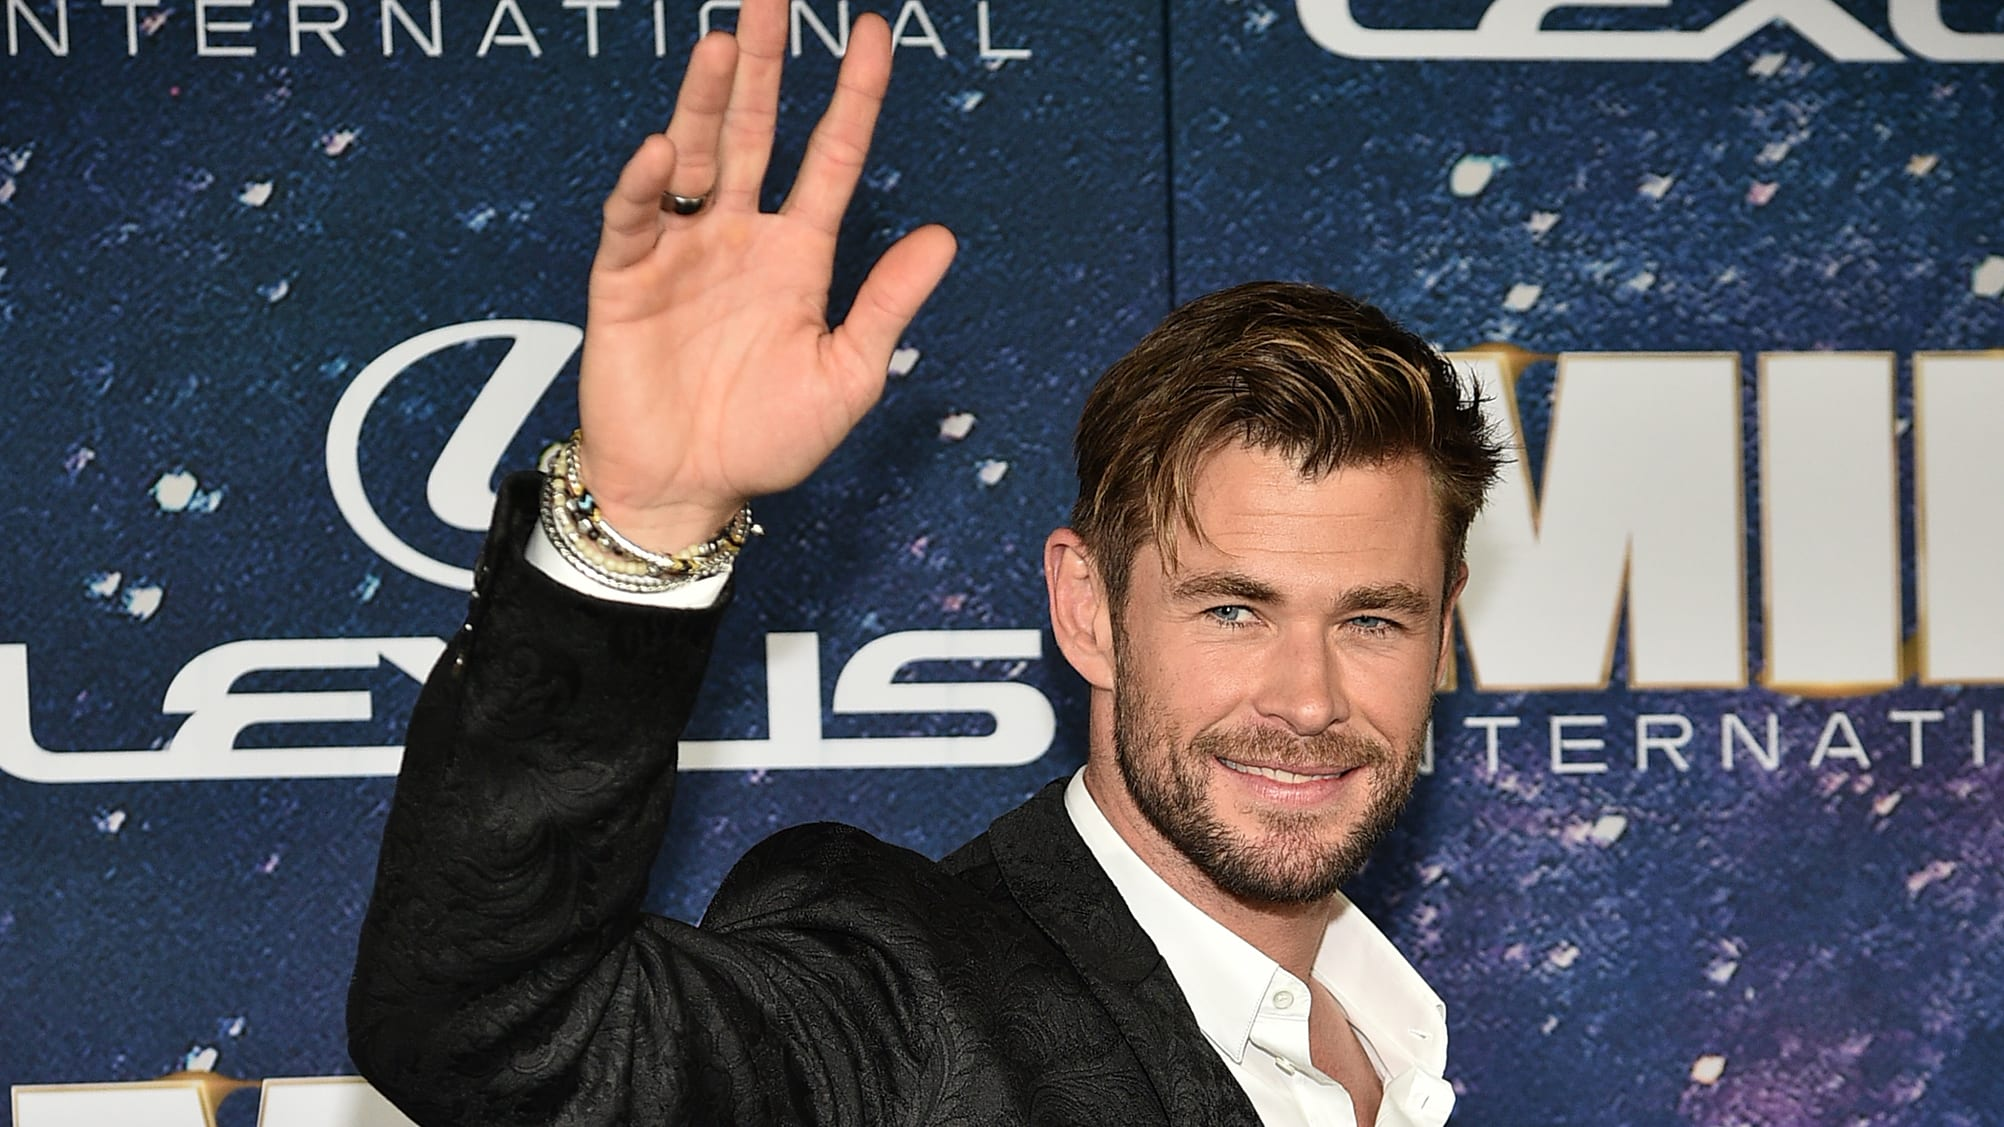 """NEW YORK, NEW YORK - JUNE 11:  Chris Hemsworth attends """"Men In Black International"""" World Premiere at AMC Loews Lincoln Square 13 on June 11, 2019 in New York City. (Photo by Theo Wargo/Getty Images)"""